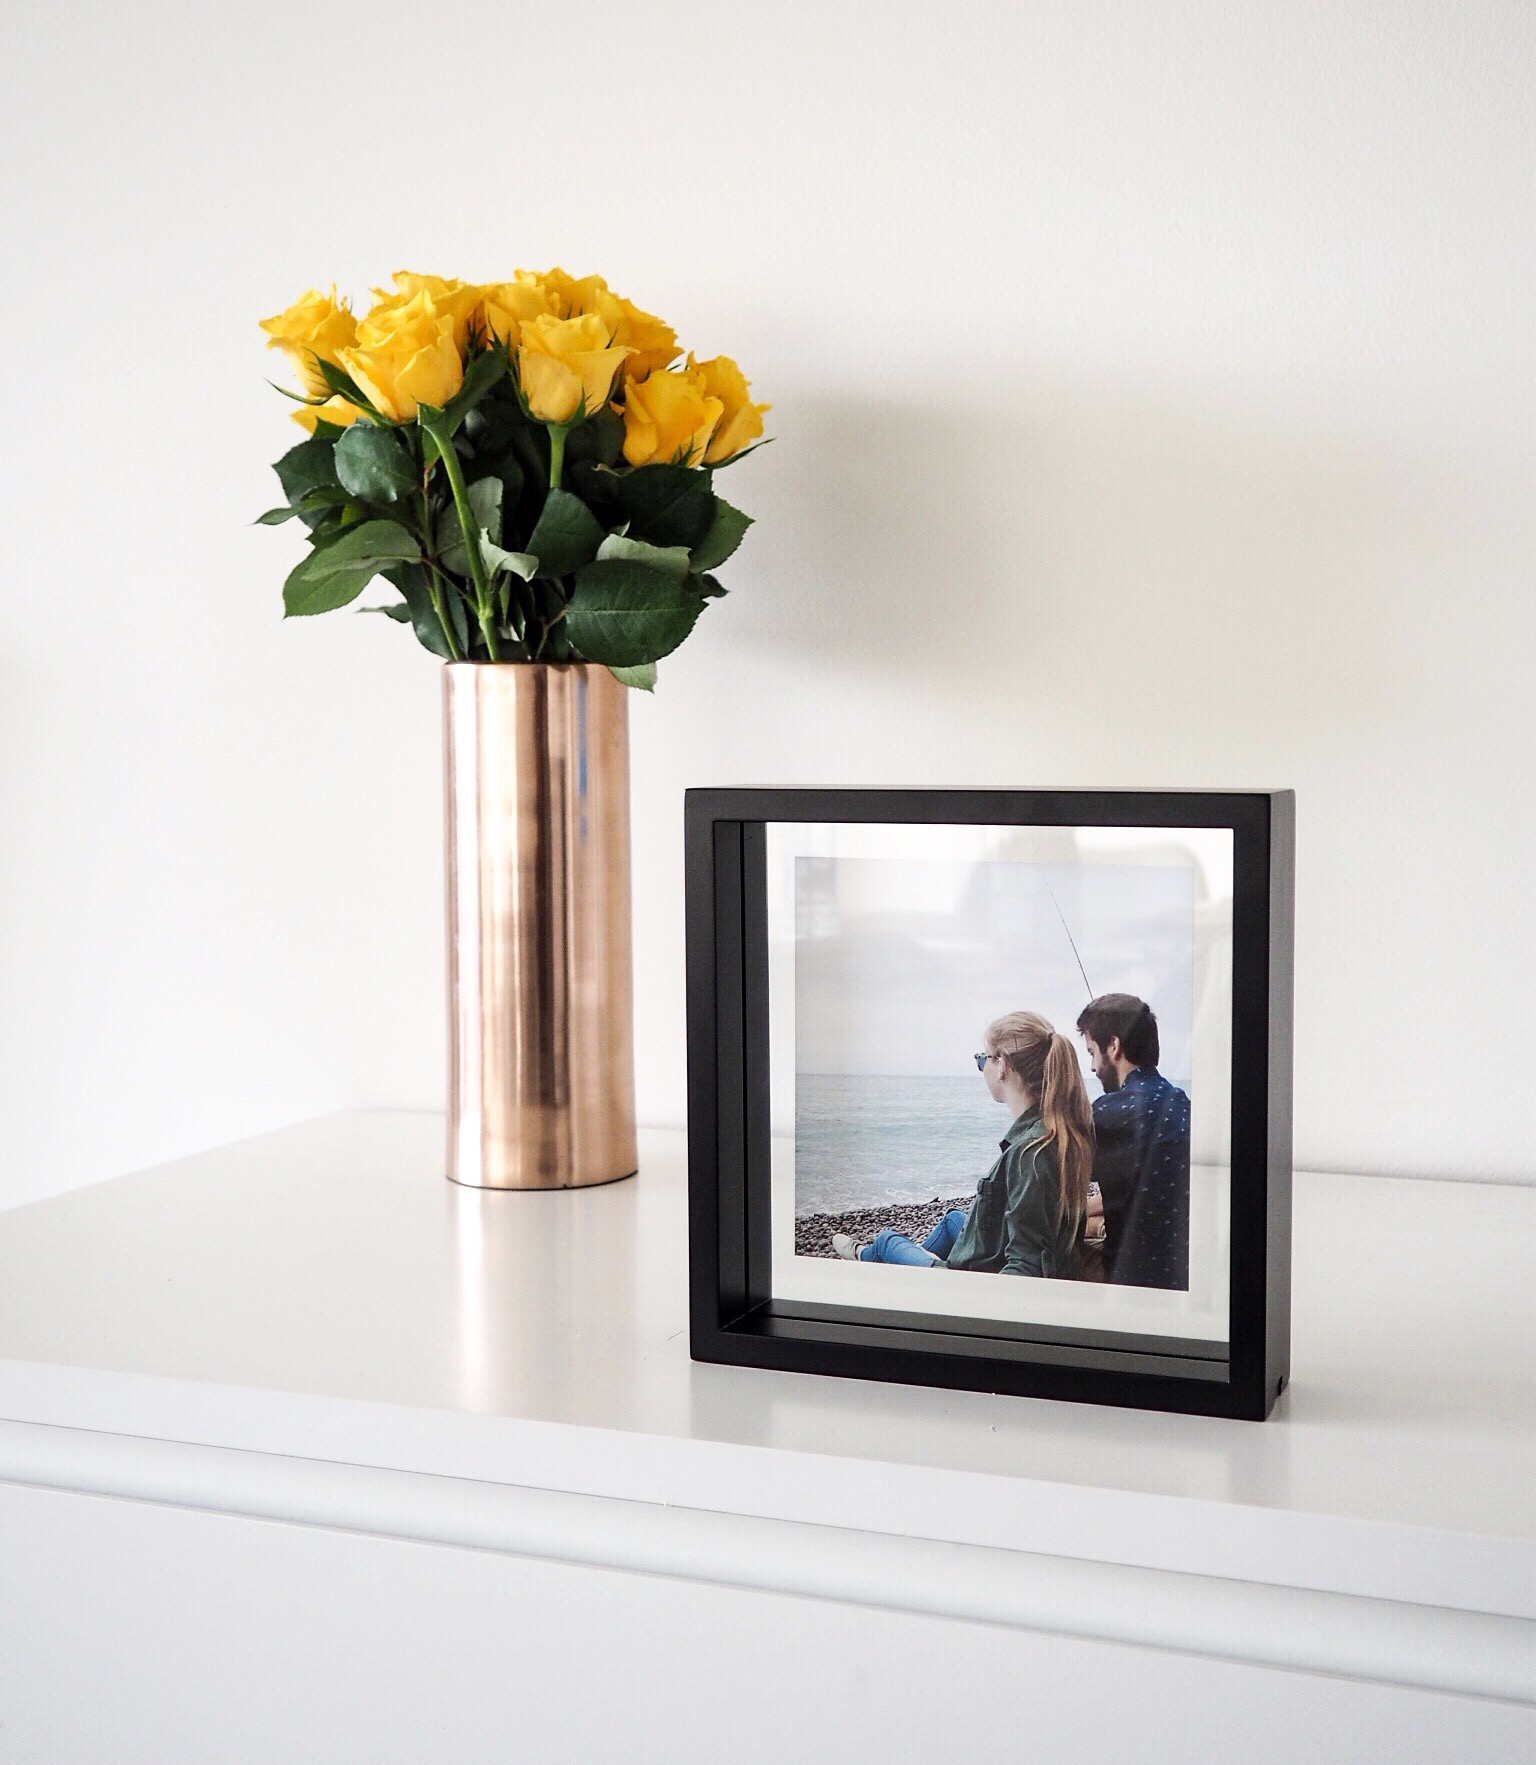 Frame your loved one - xlboom